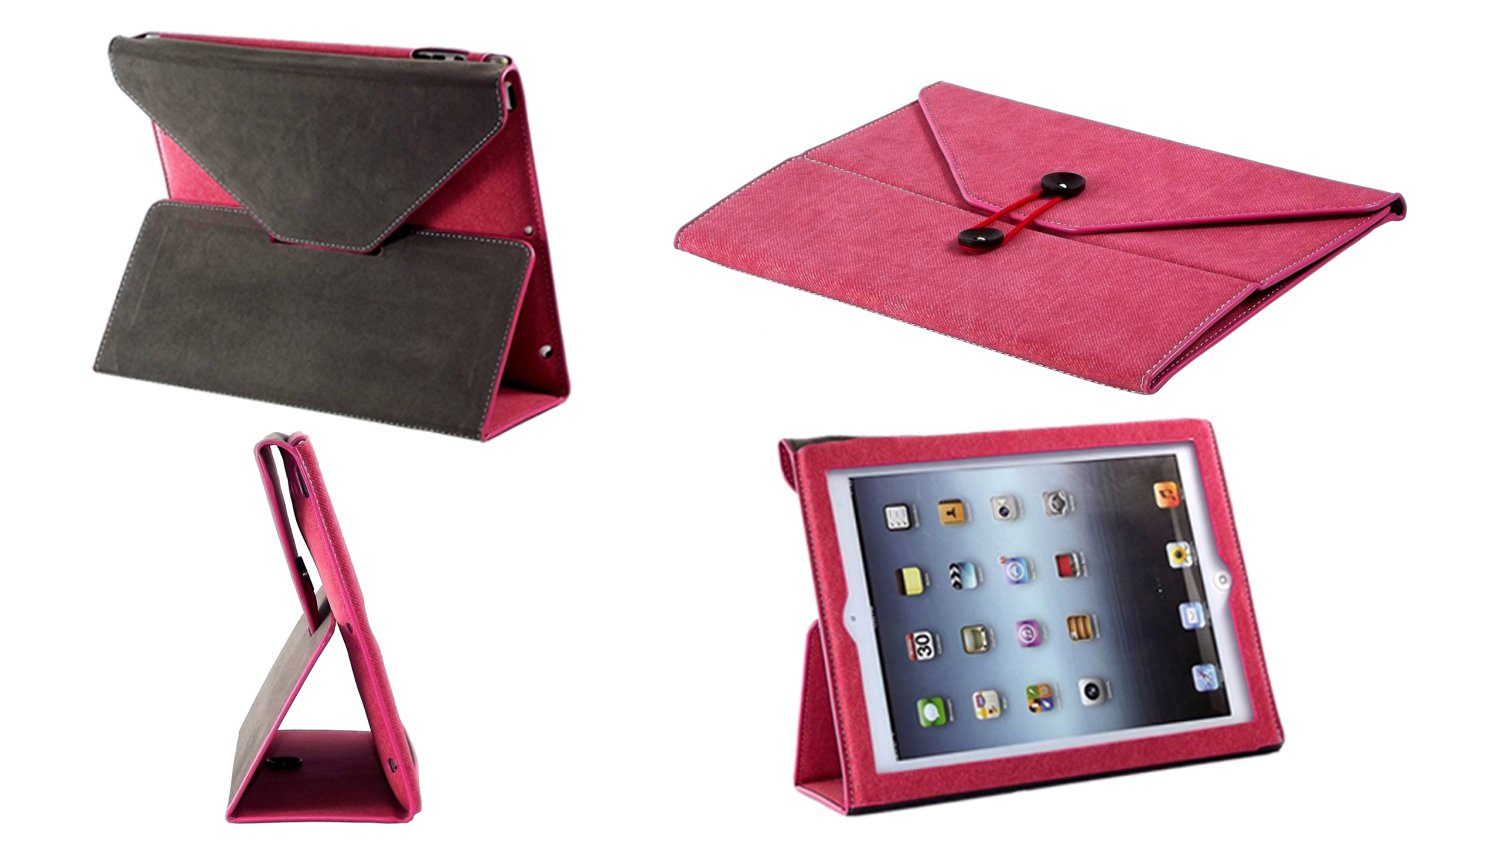 BTM Denim Envelope Jean Portfolio Case Cover Protector for Apple Ipad 2nd 2, 3, 4th 4 Generation Retina Display w/ Elastic Strap & Great Holder | Cute for the Girly Girl | Protective Durable Designer Stand | Cheap Price, Great Value - Raspberry